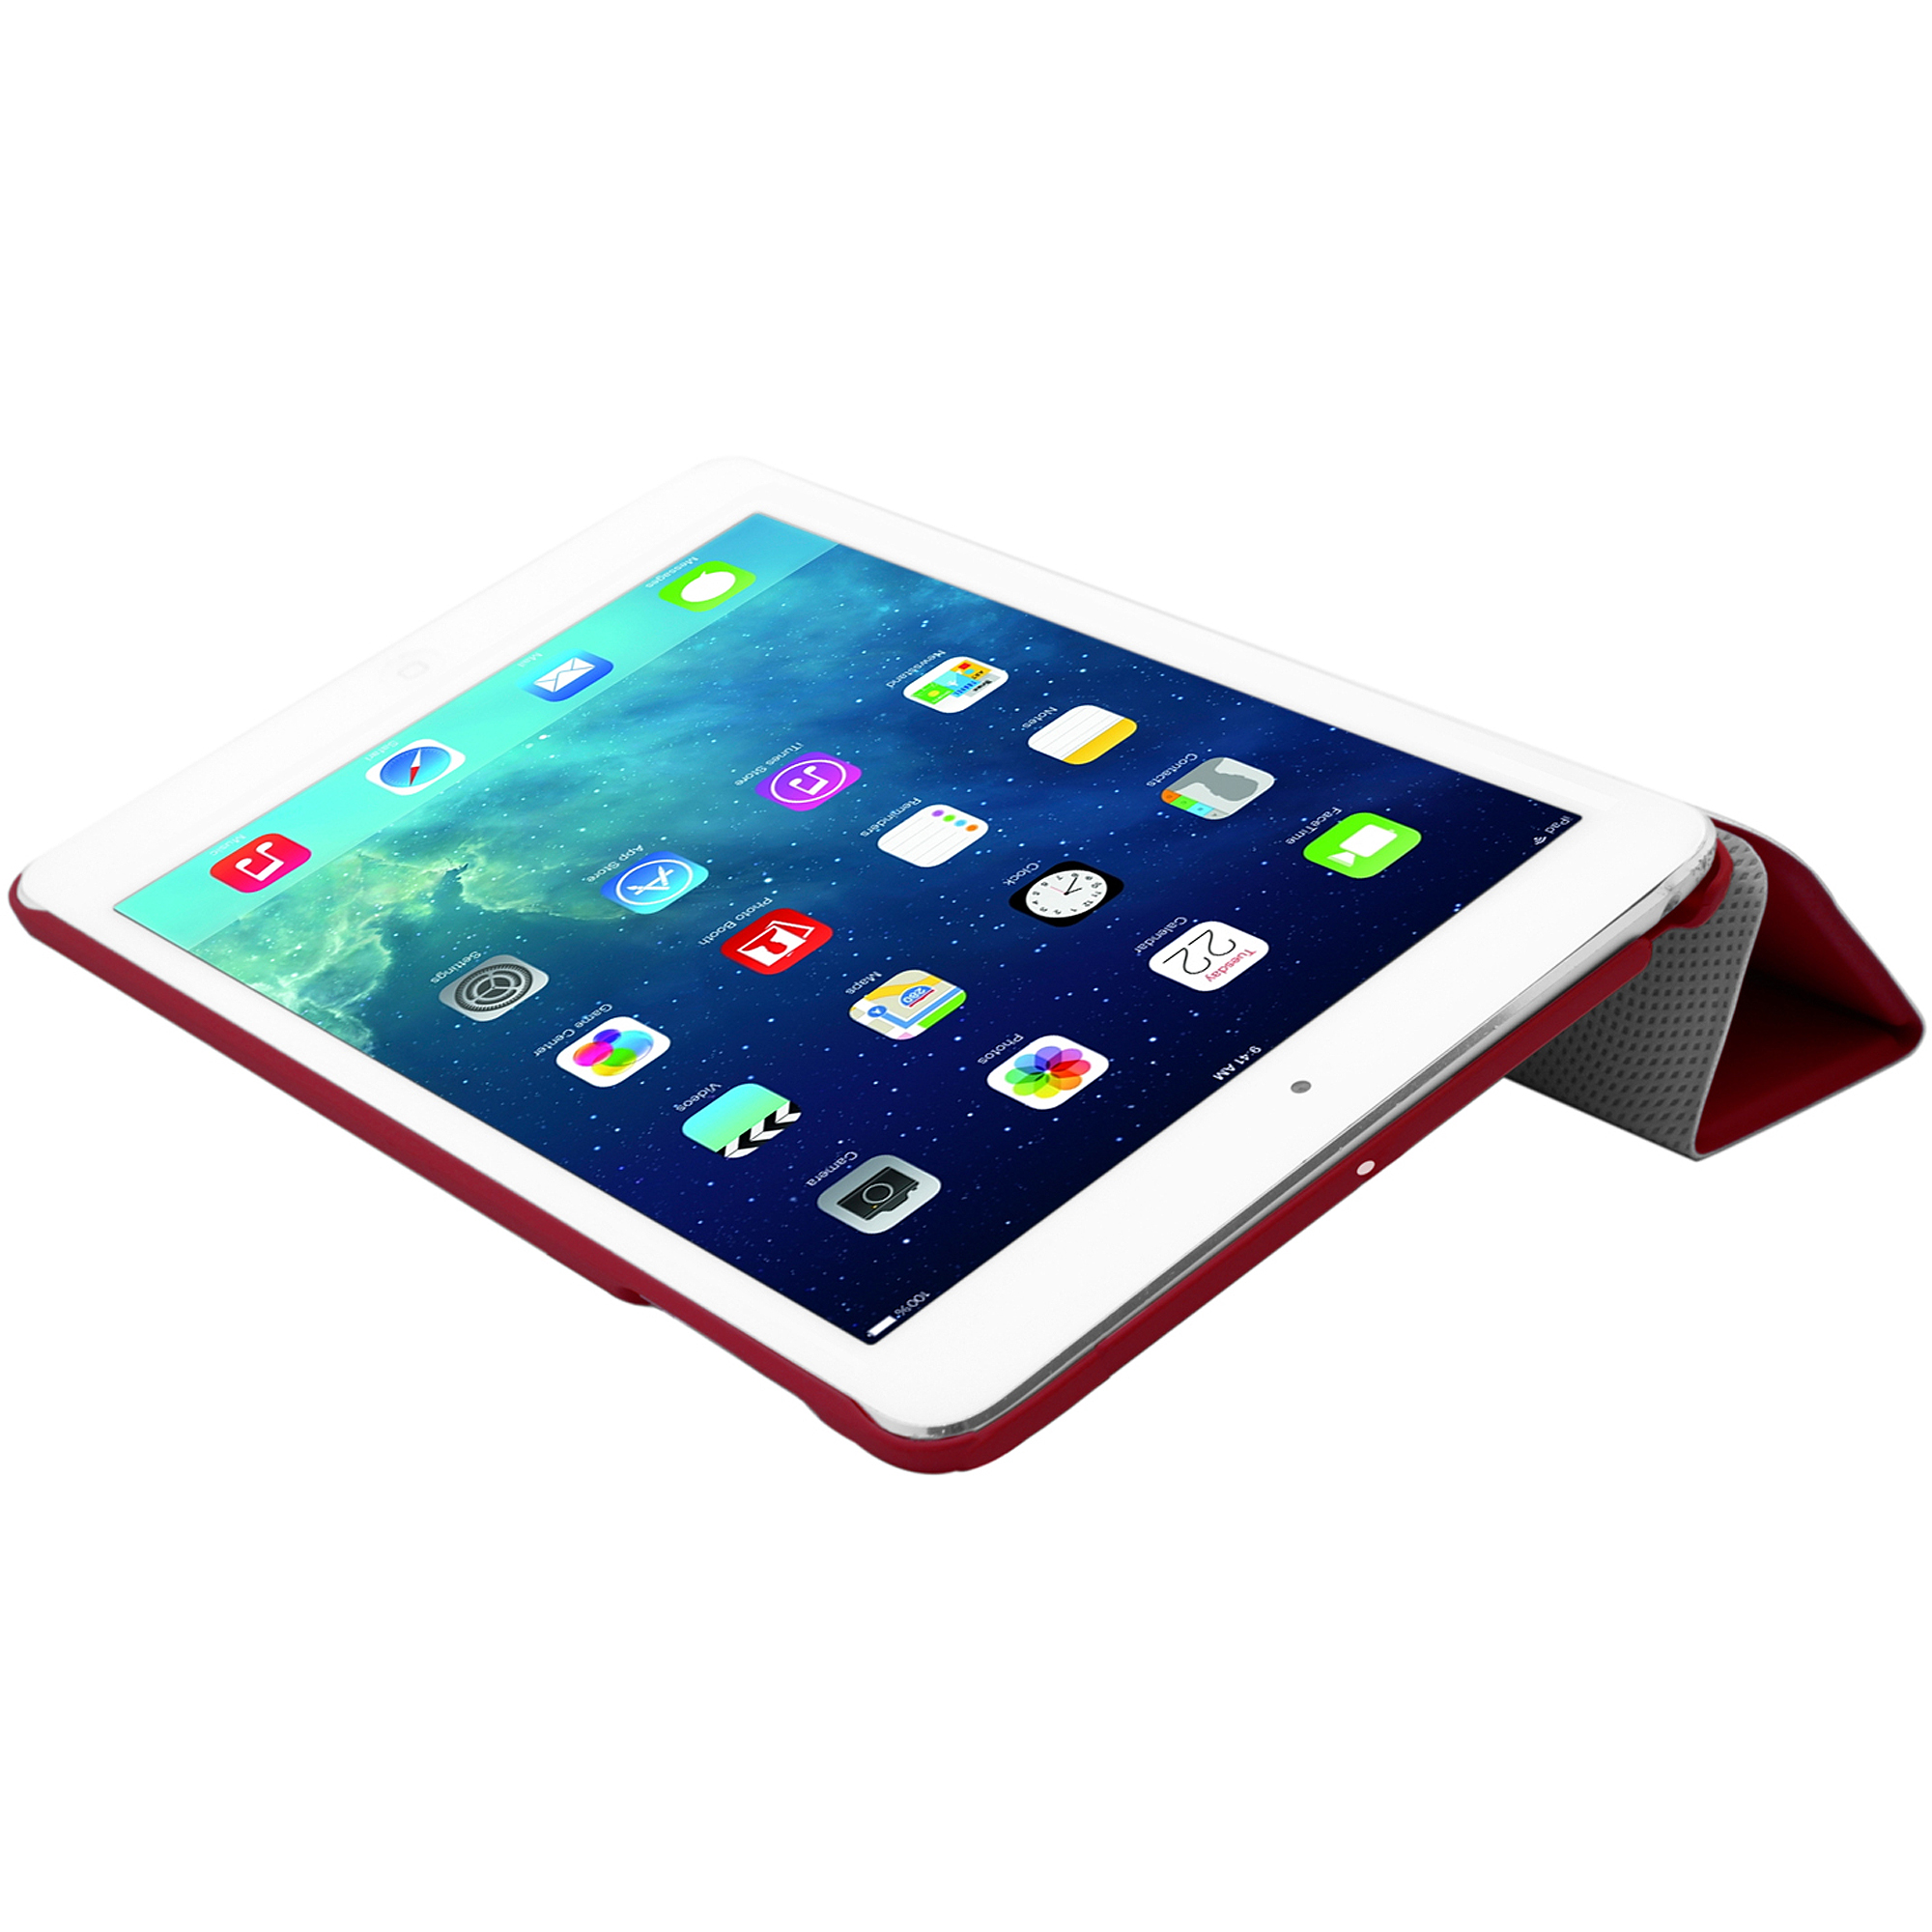 Cirago Slim-fit PU Cover Case for Apple iPad Air, Red